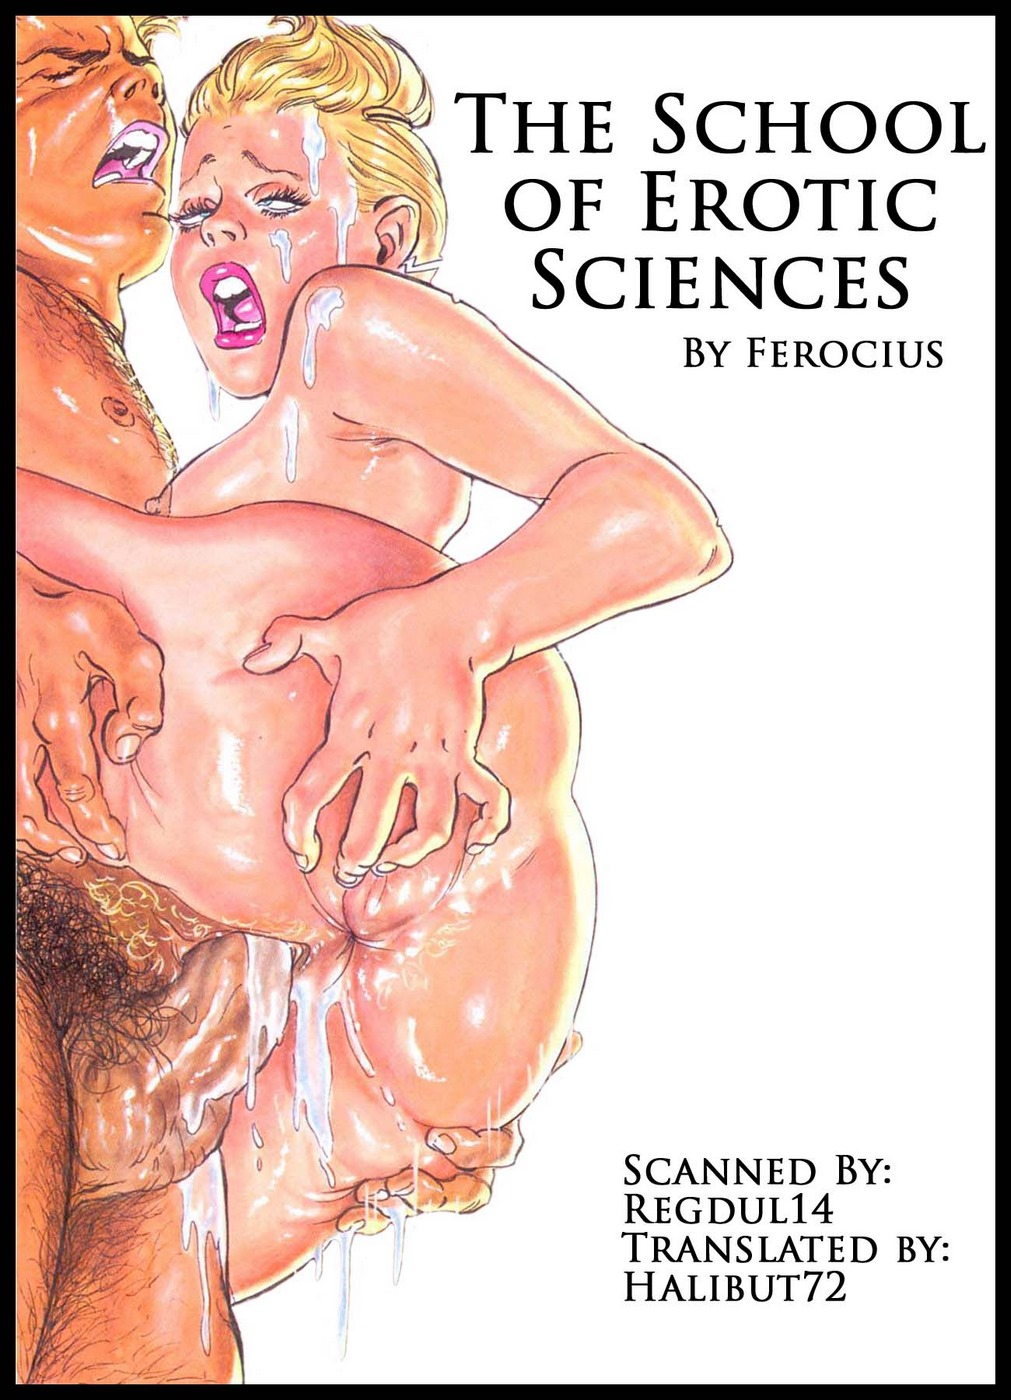 School Of Erotic Sciences- Ferocius